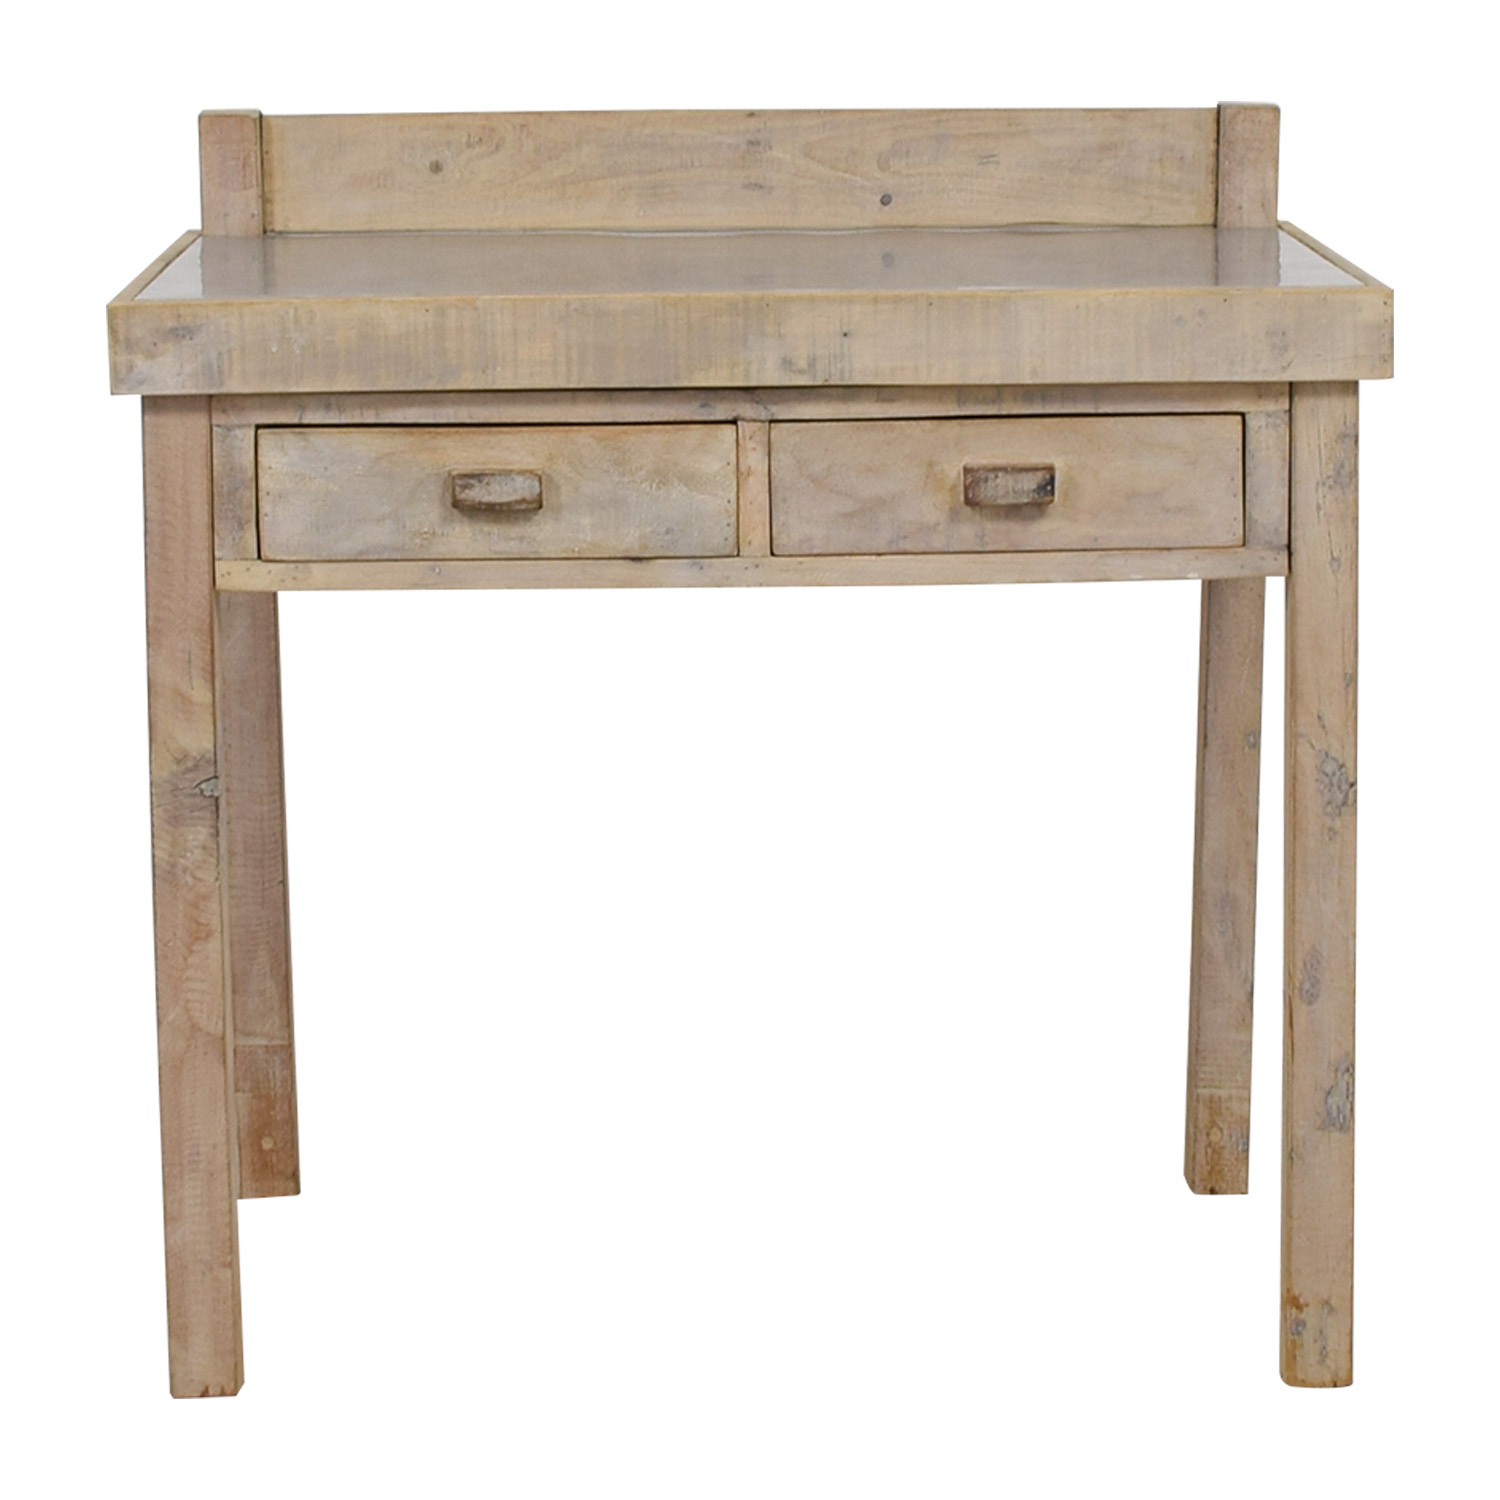 Tree Hong Kong Tree Hong Kong Reclaimed Wood Console nj